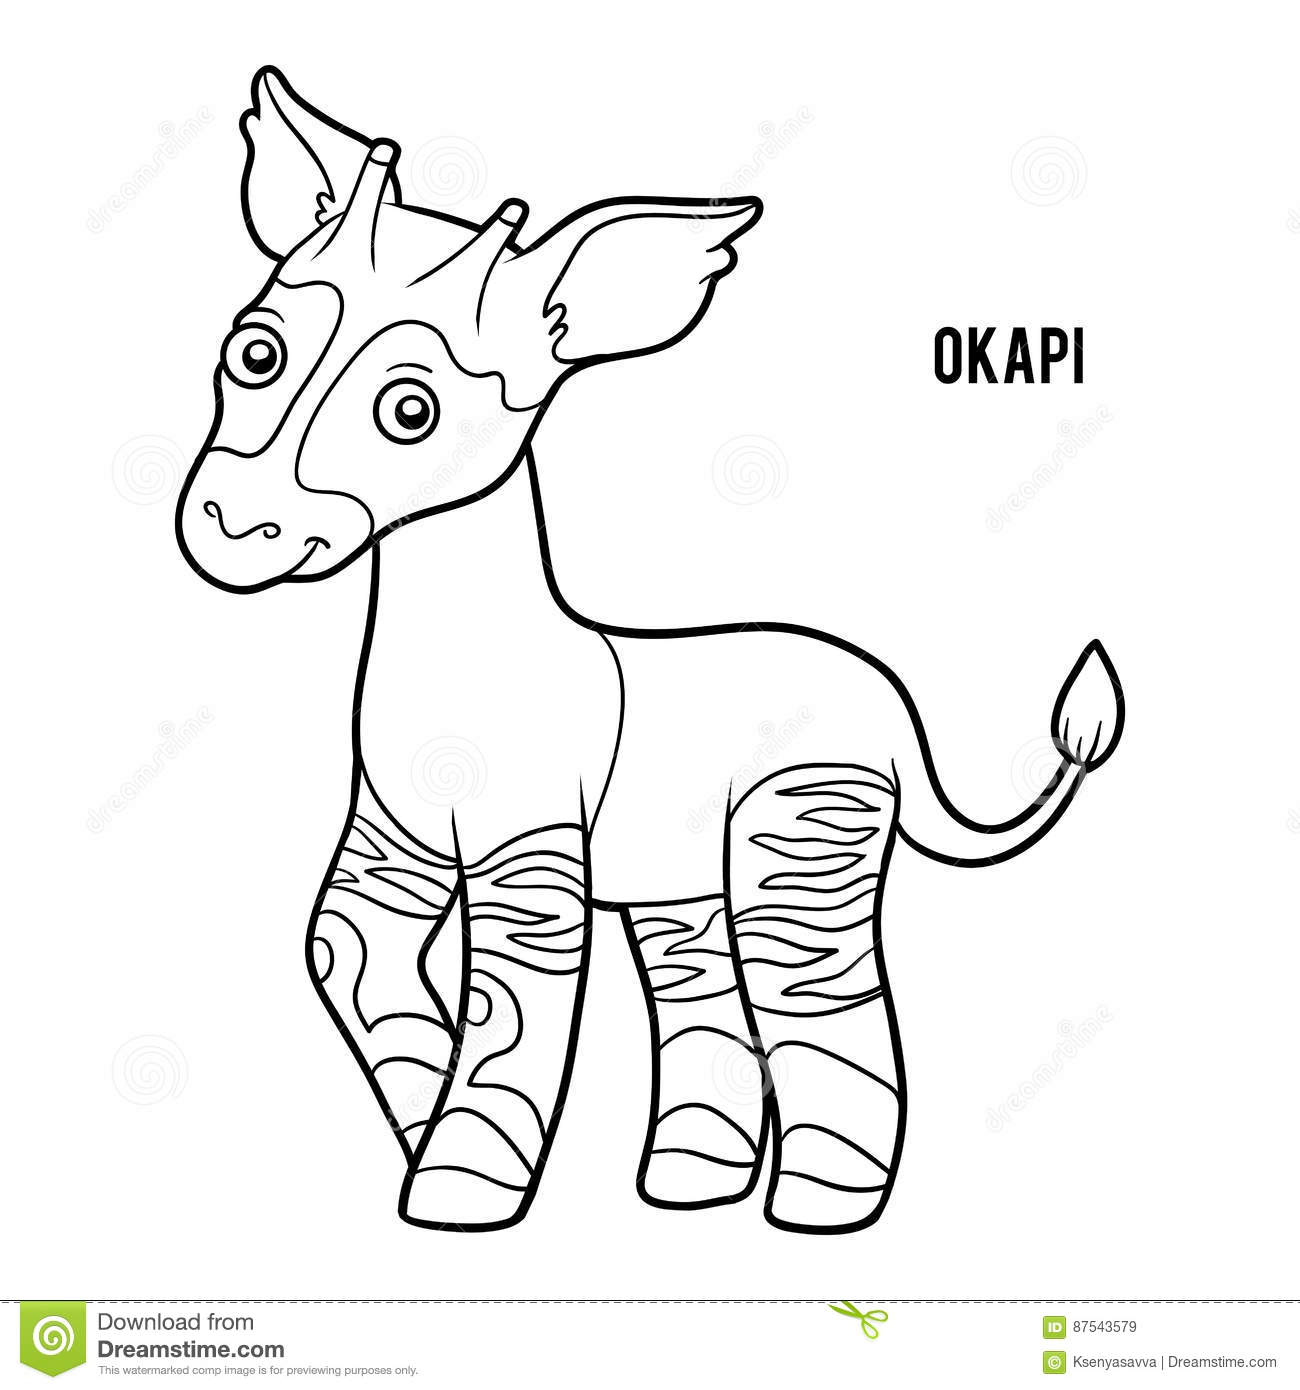 Coloring book okapi stock vector image of printable for Okapi coloring page